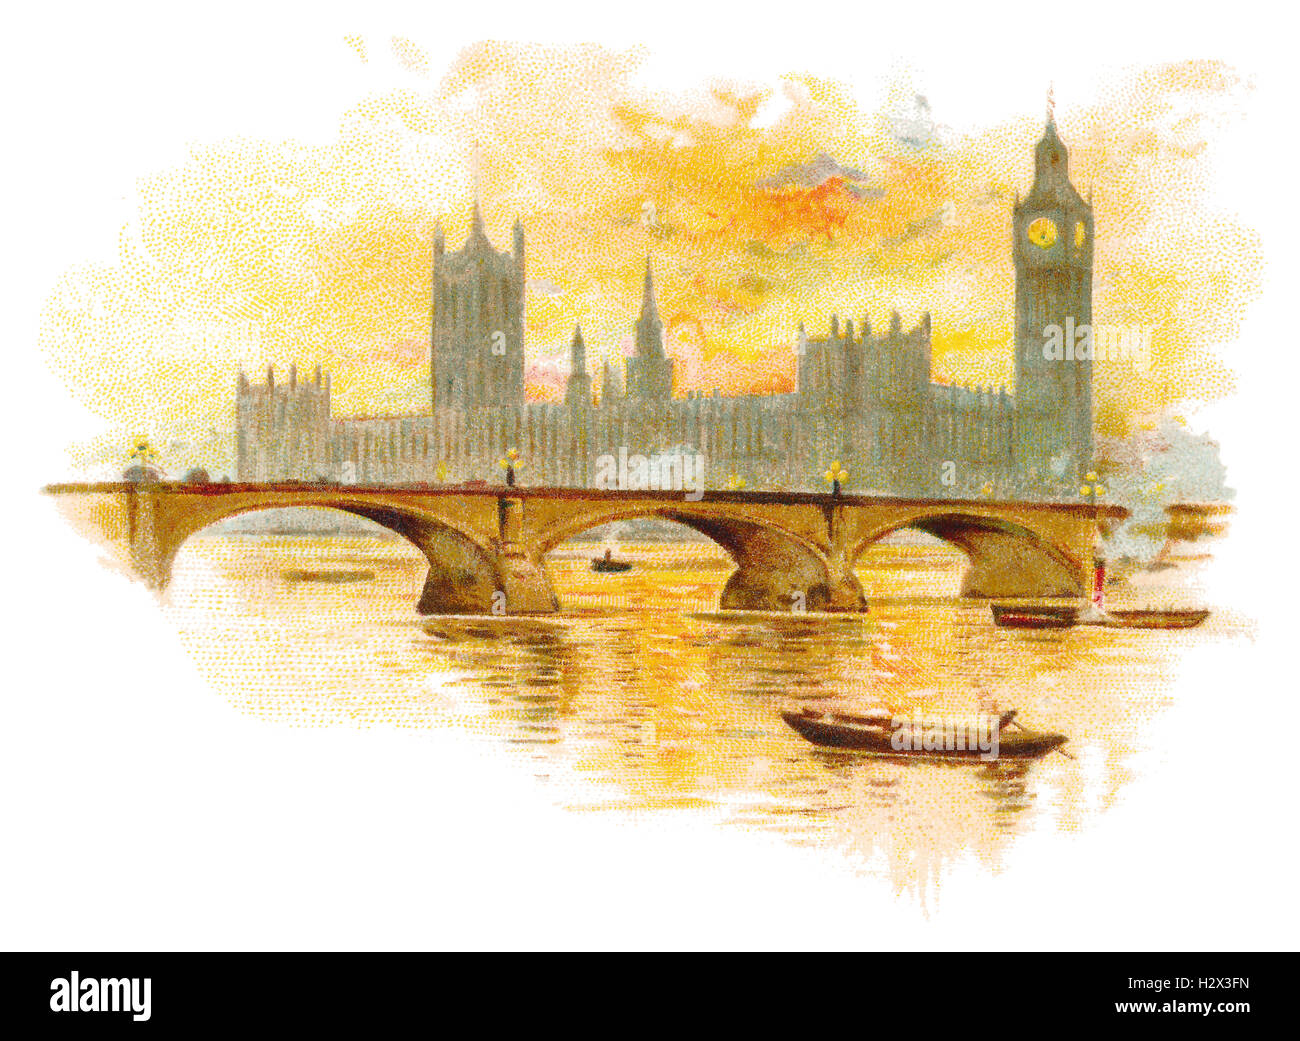 Colour illustration of the Houses Of Parliament and Westminster Bridge over the River Thames in London, England - Stock Image